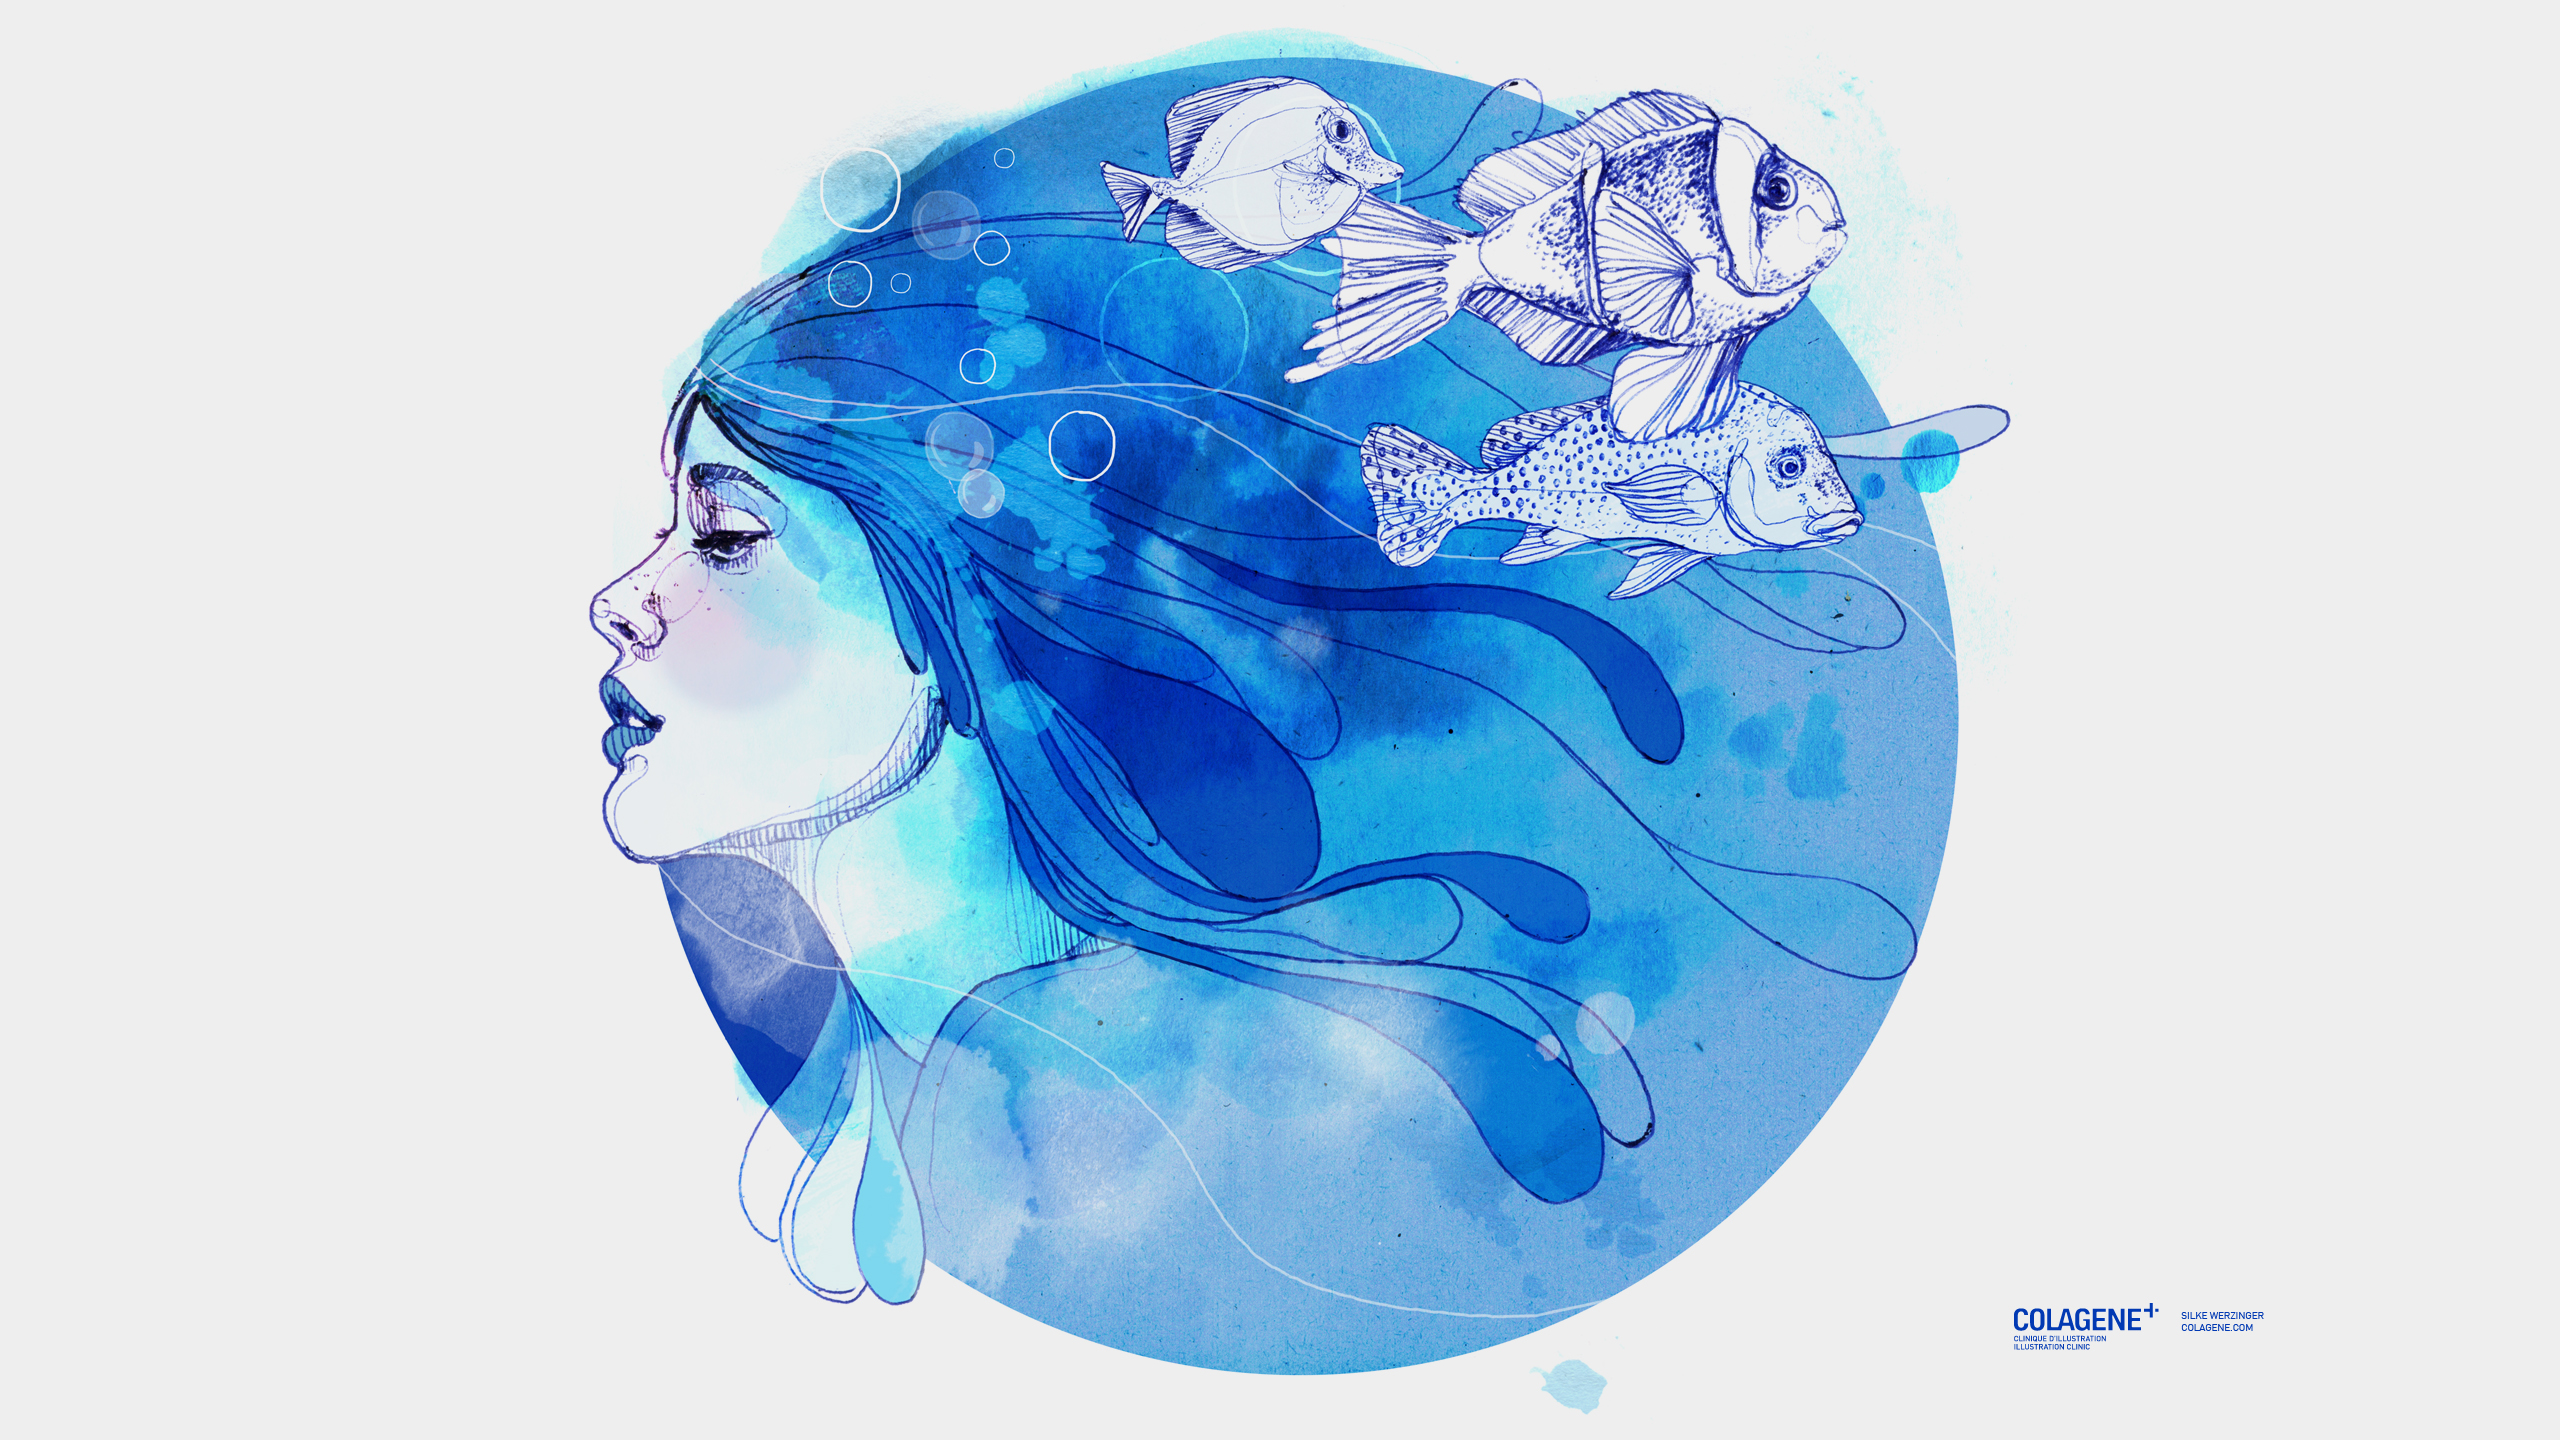 Colagene Creative Clinic News Pisces Wallpaper To Download By